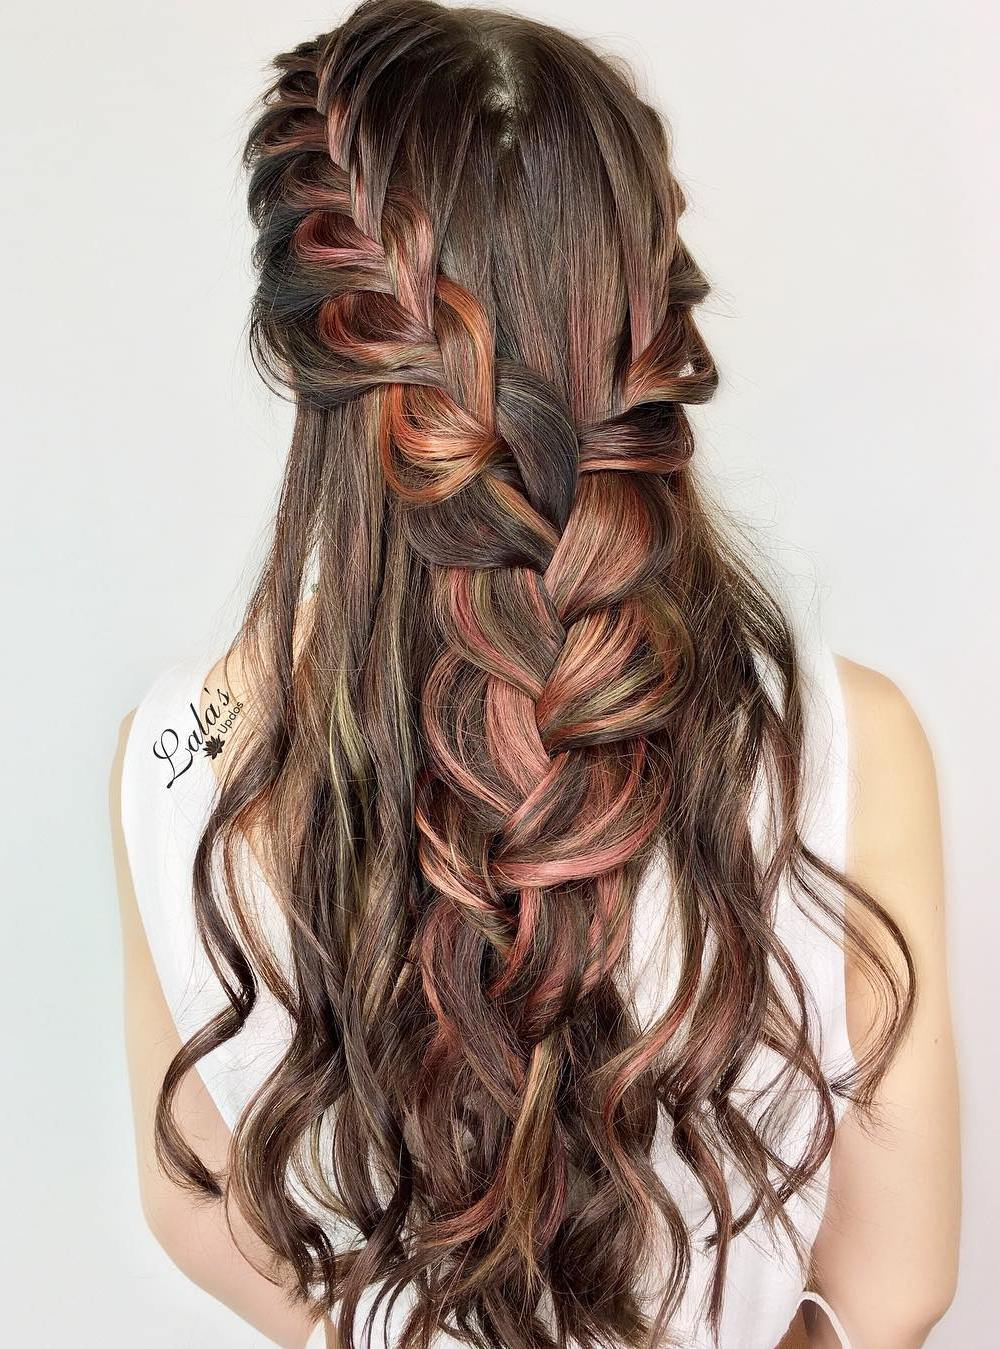 Superb Two Braids Into One Half Up Hairstyle